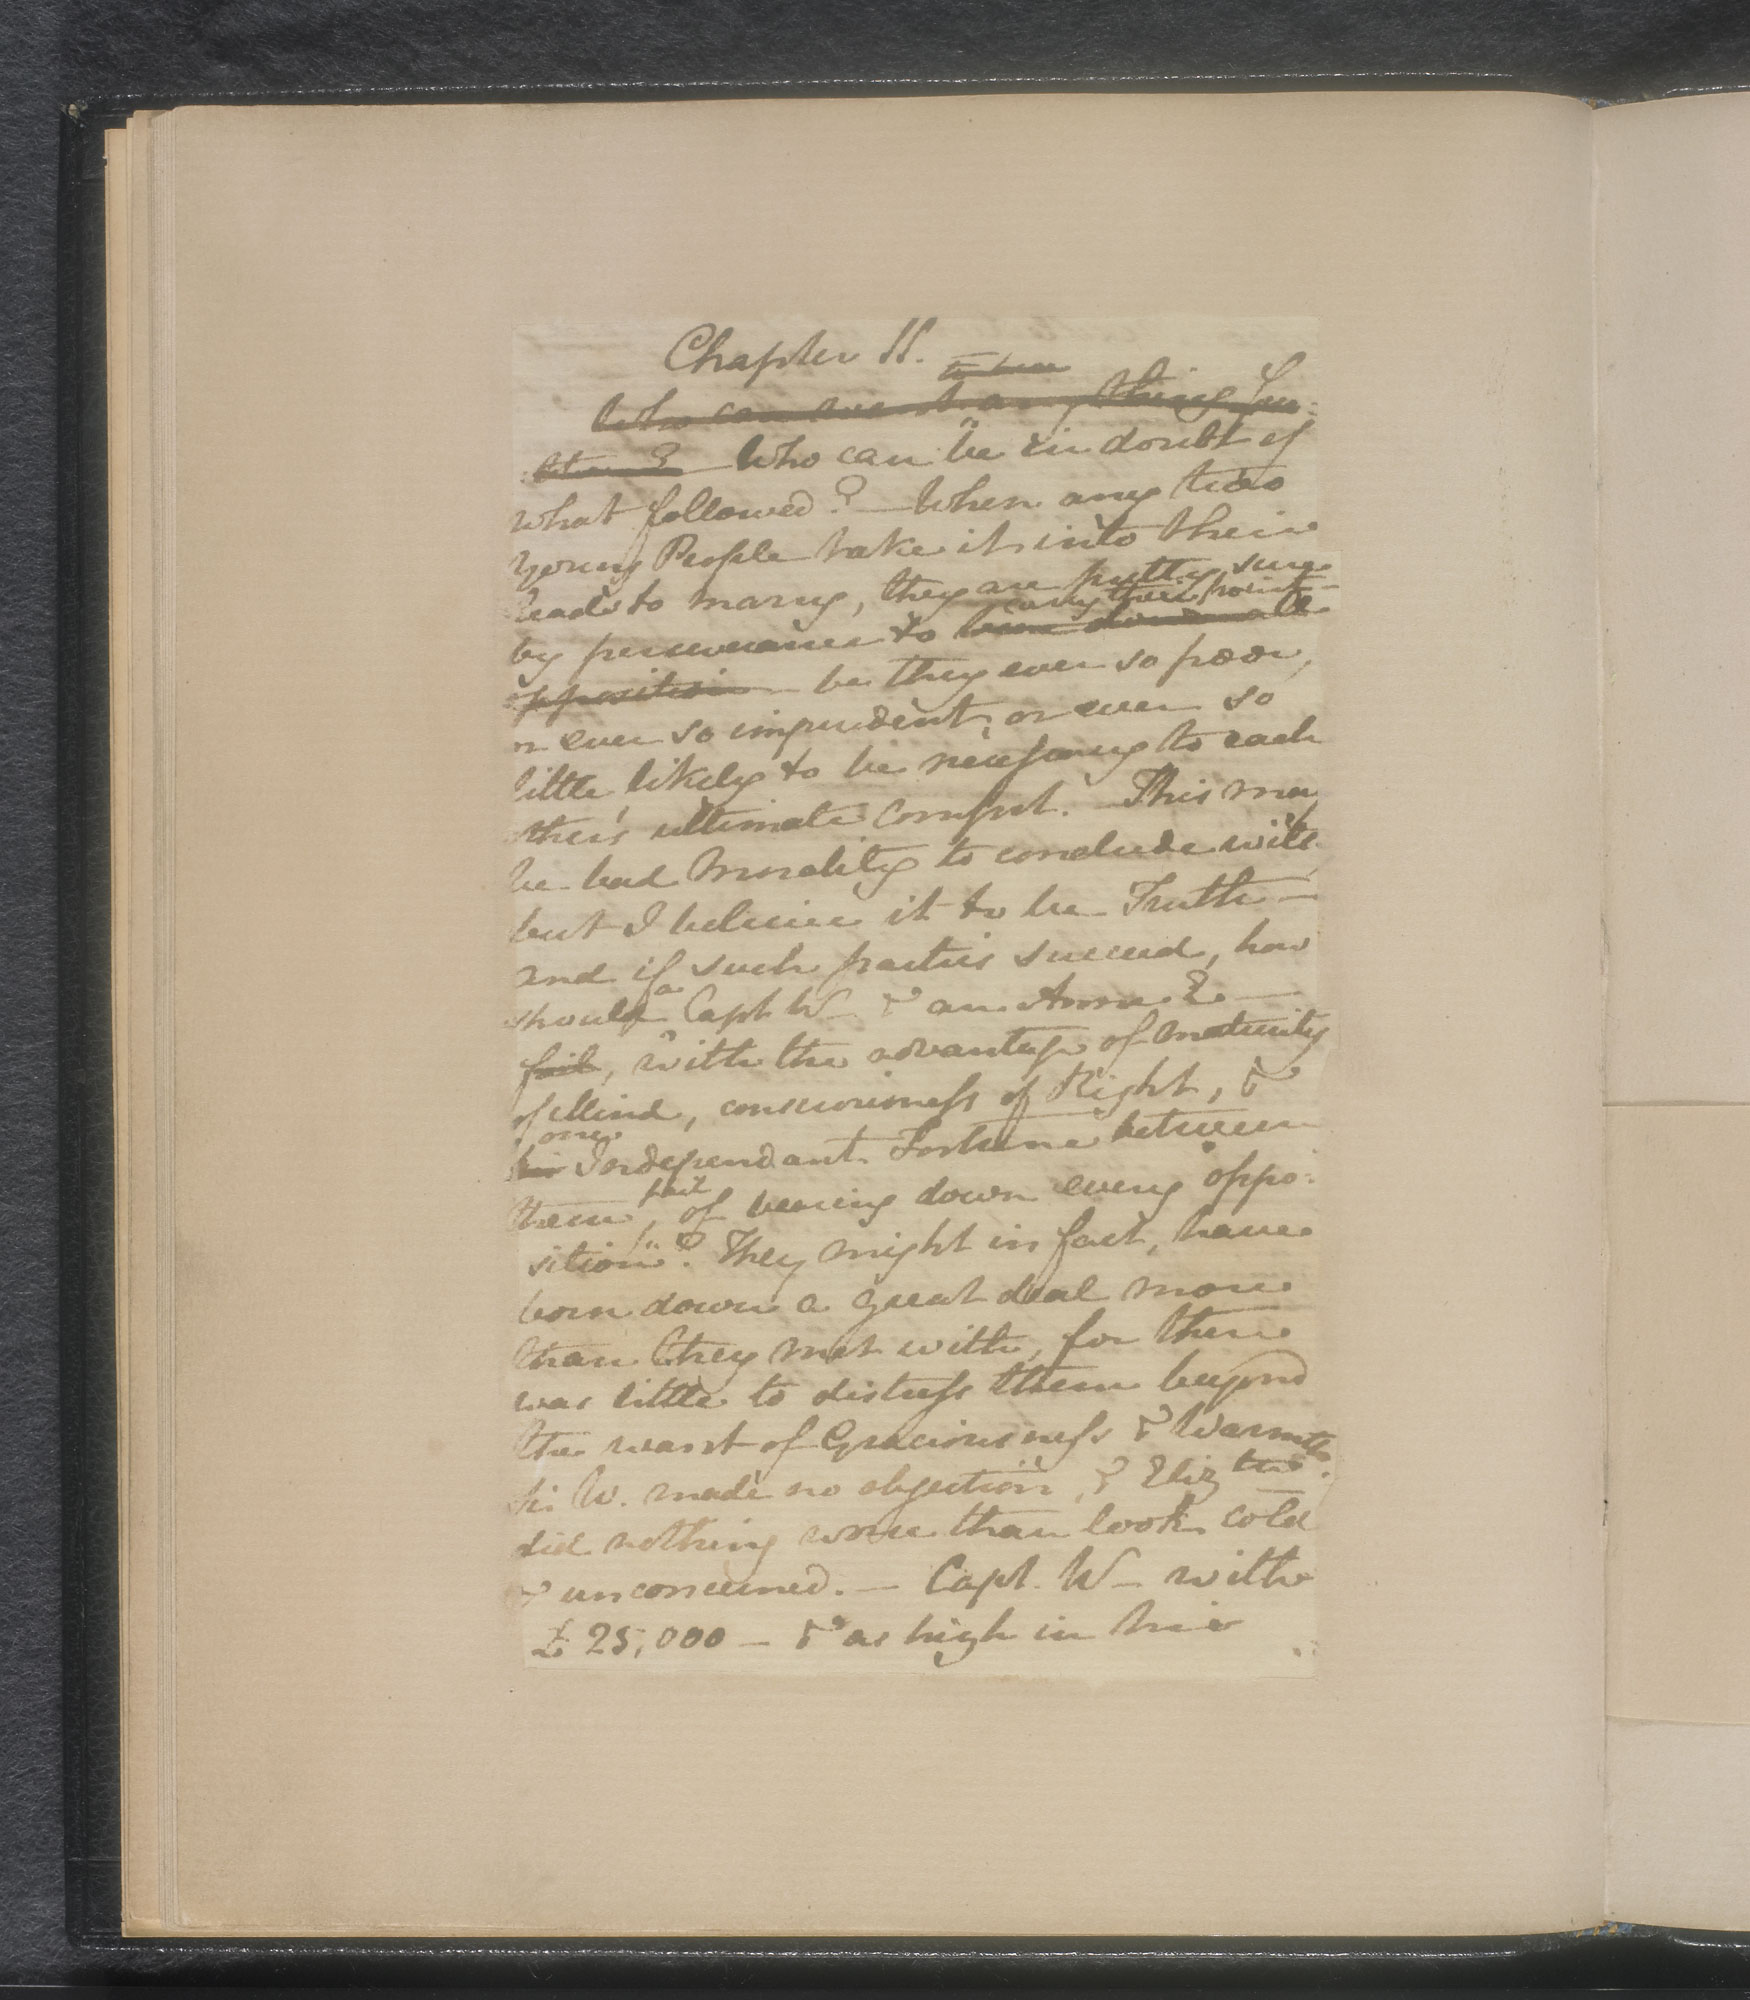 Manuscript of chapters 10 and 11 from Jane Austen's Persuasion [folio: f. 9v]